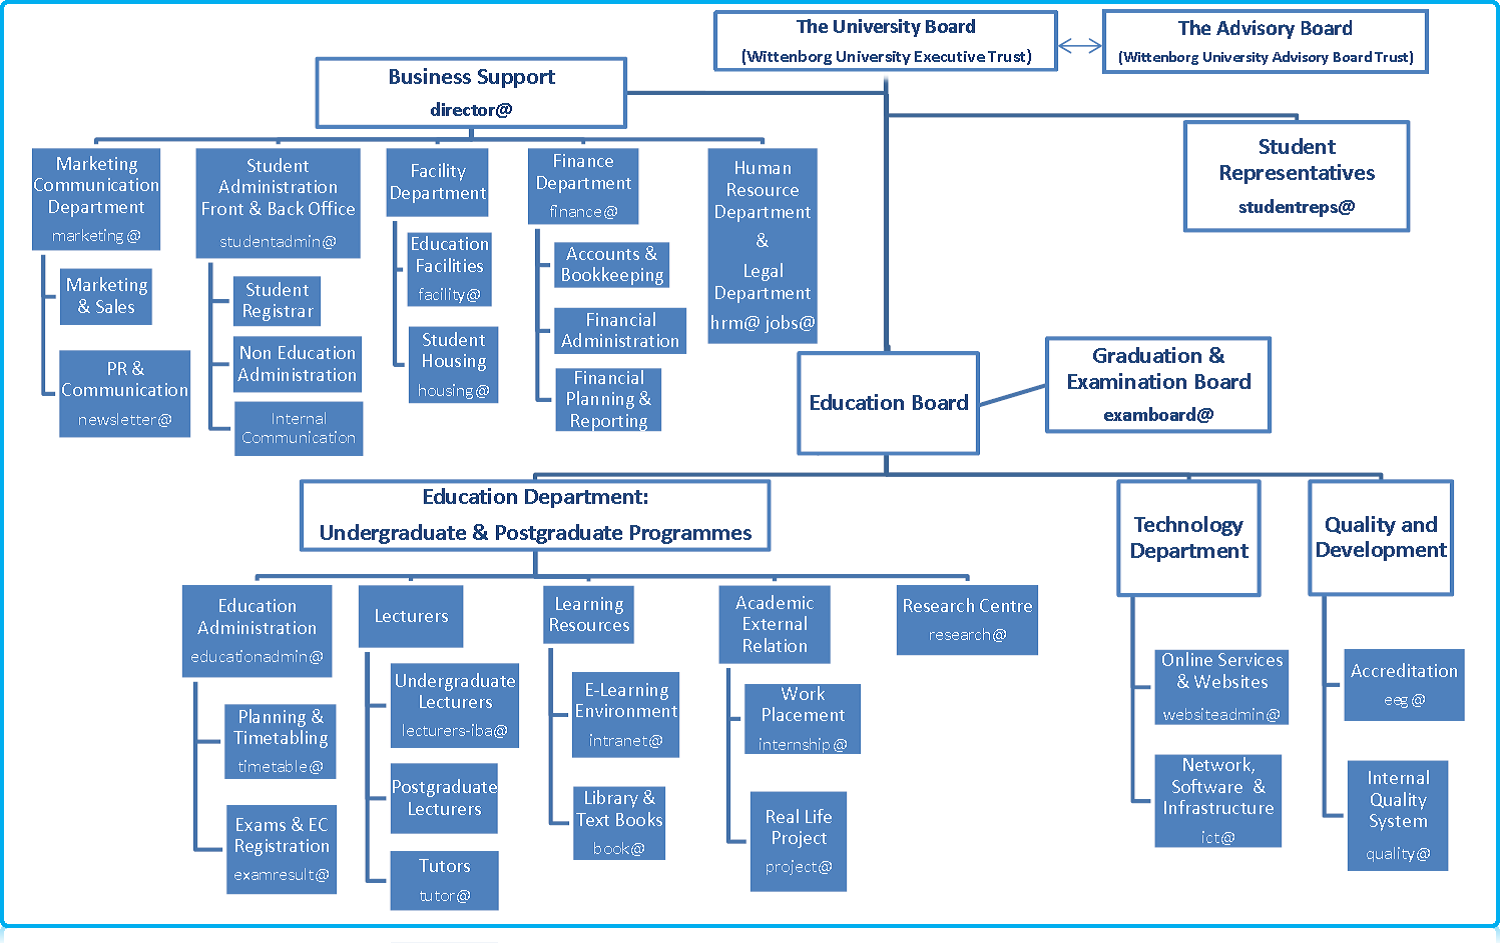 Wittenborg University Organisation Structure